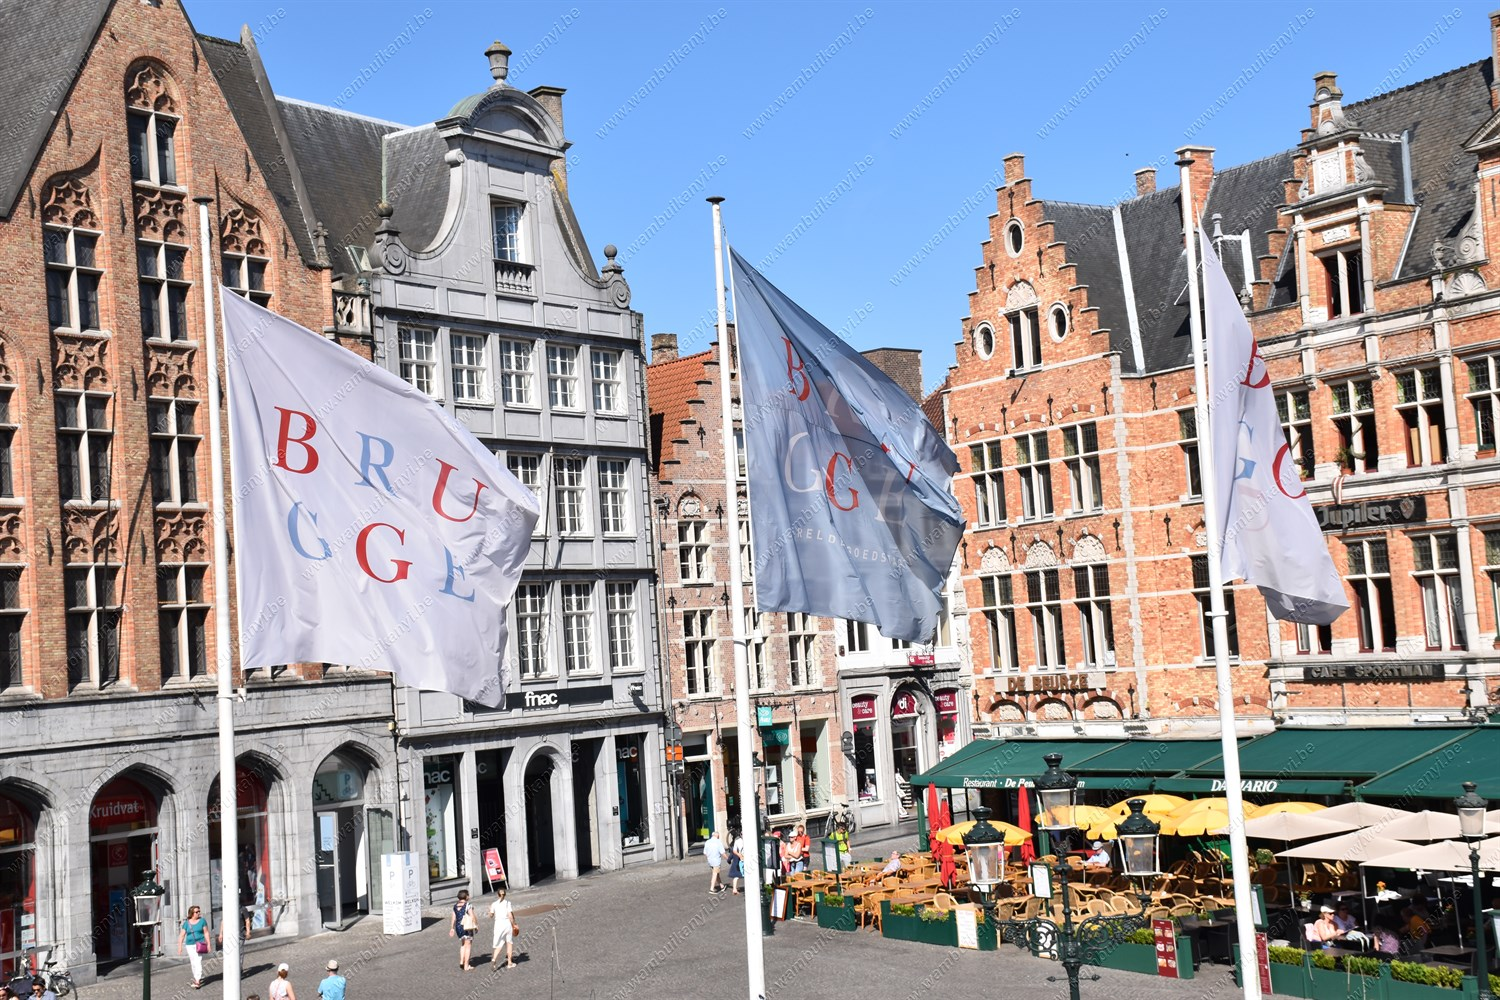 How To Experience The Best Of Bruges, Belgium